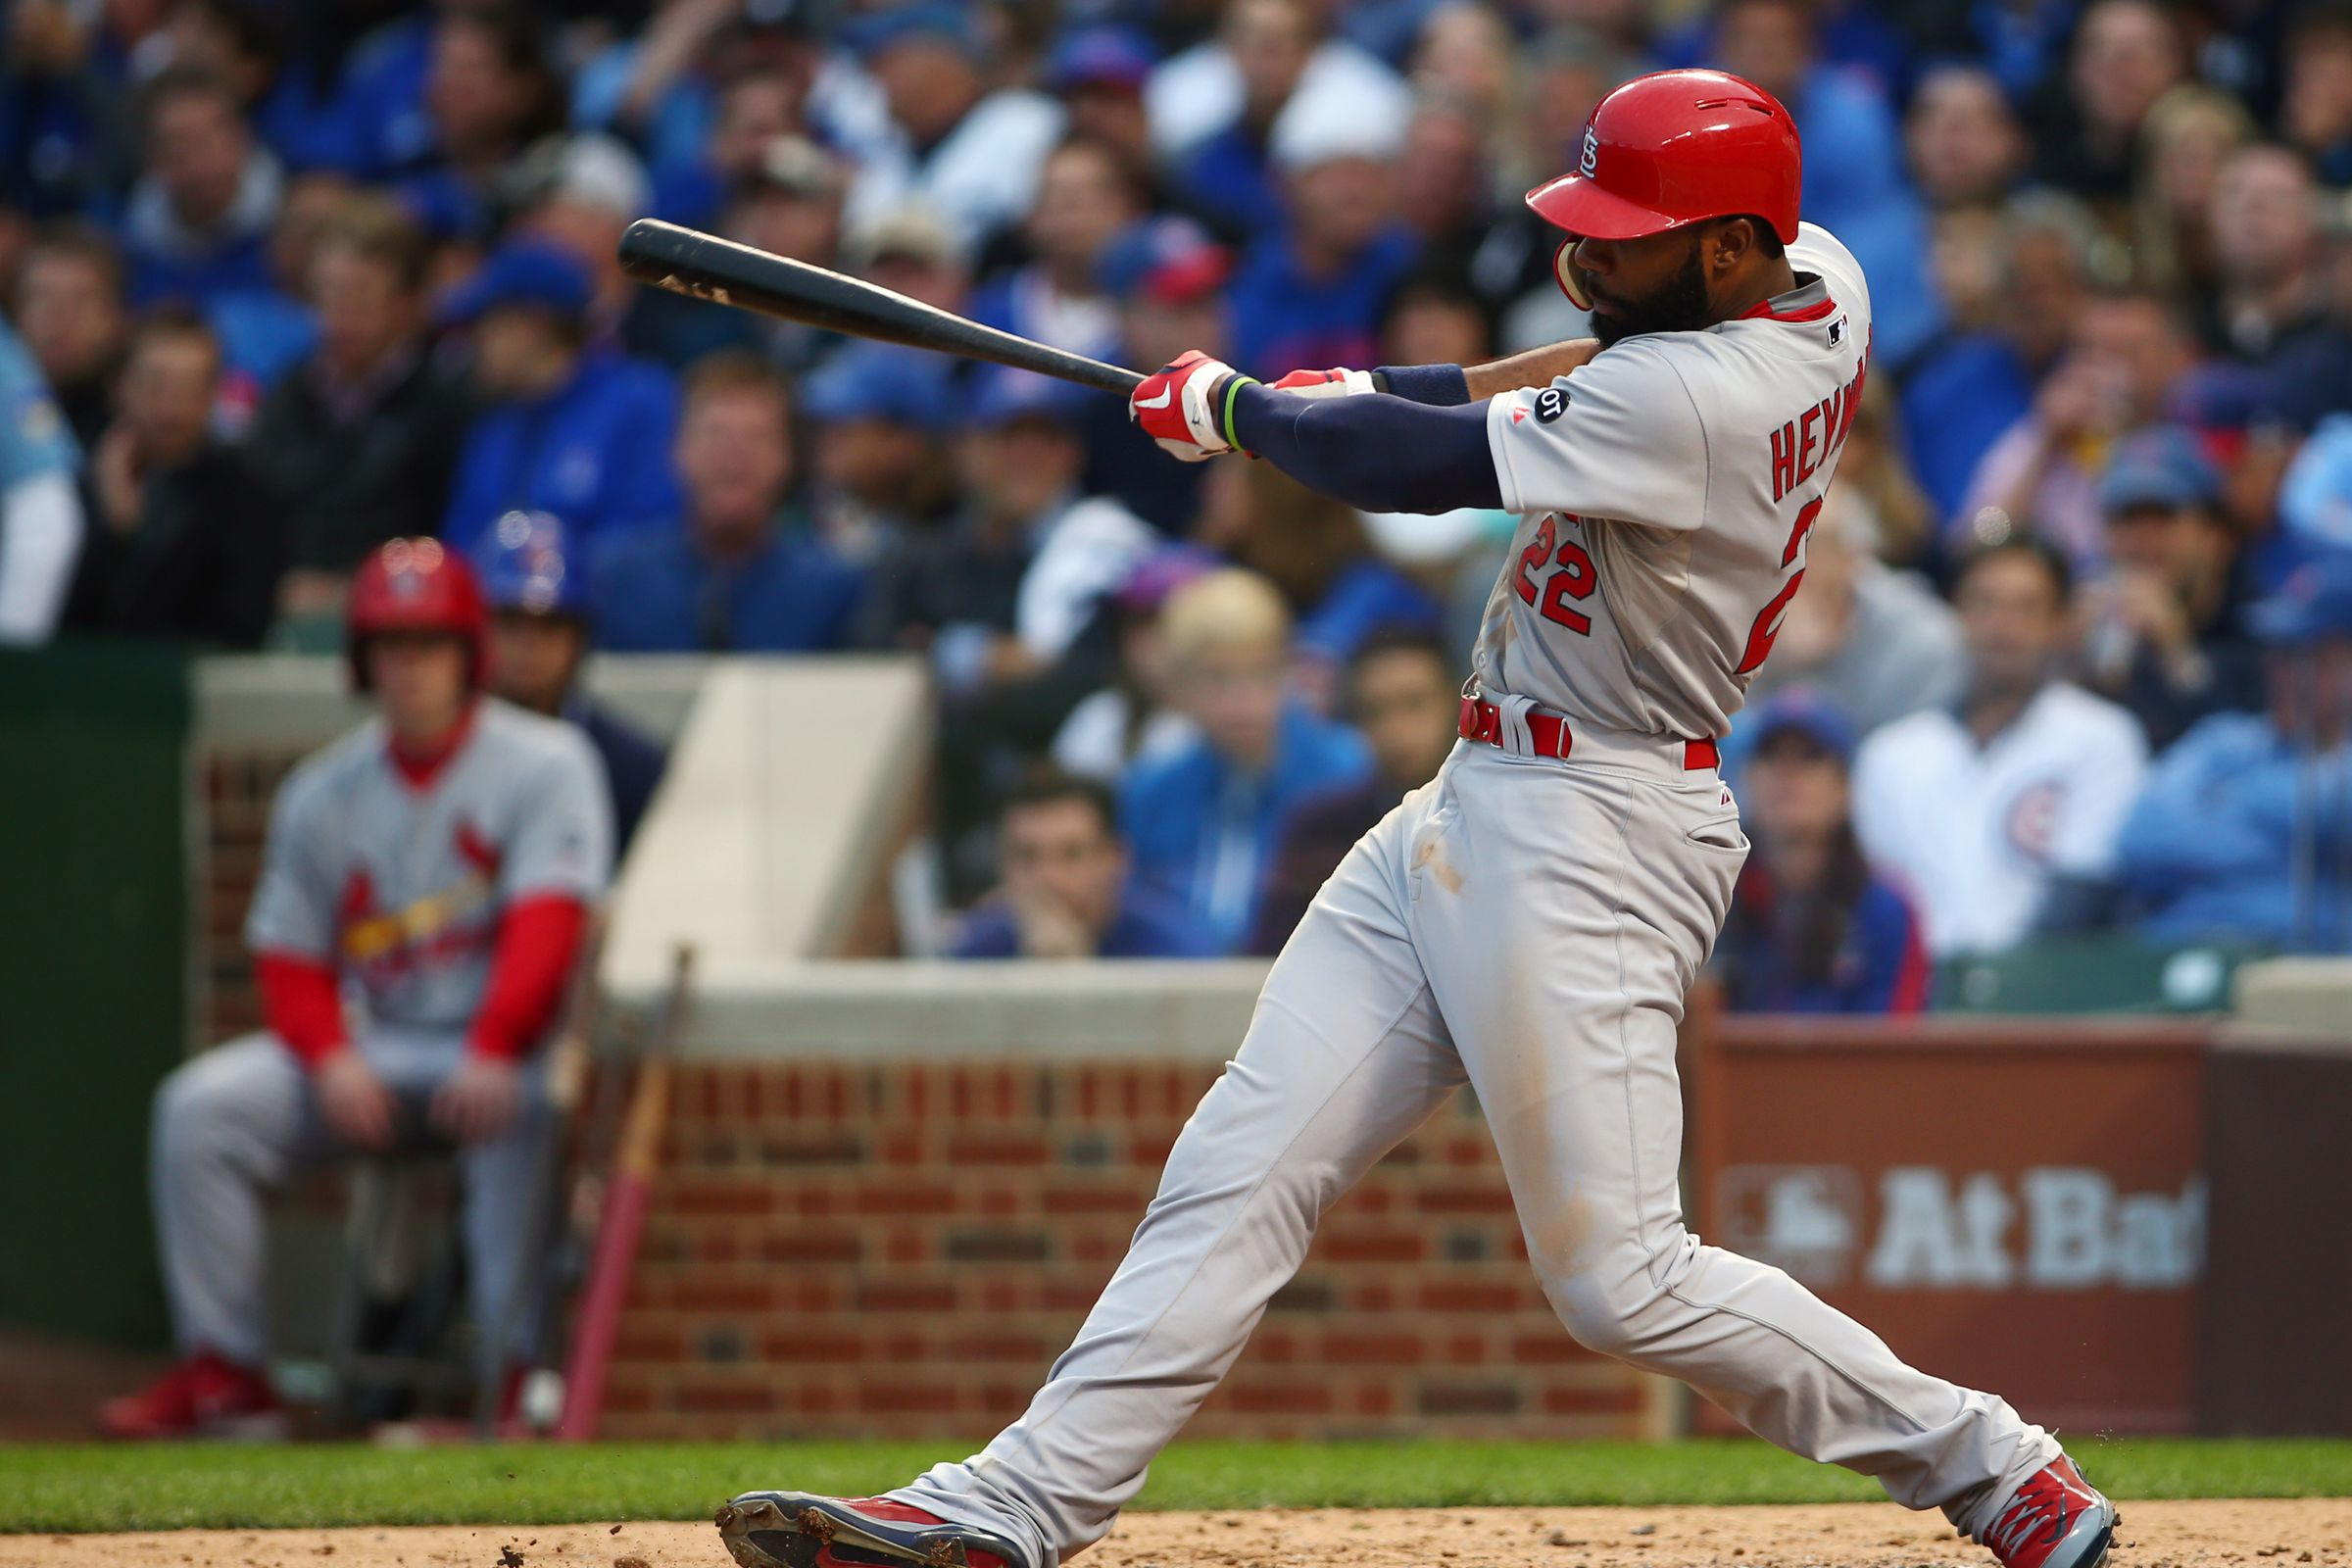 Jason Heyward: Heyward expected to choose team Thursday